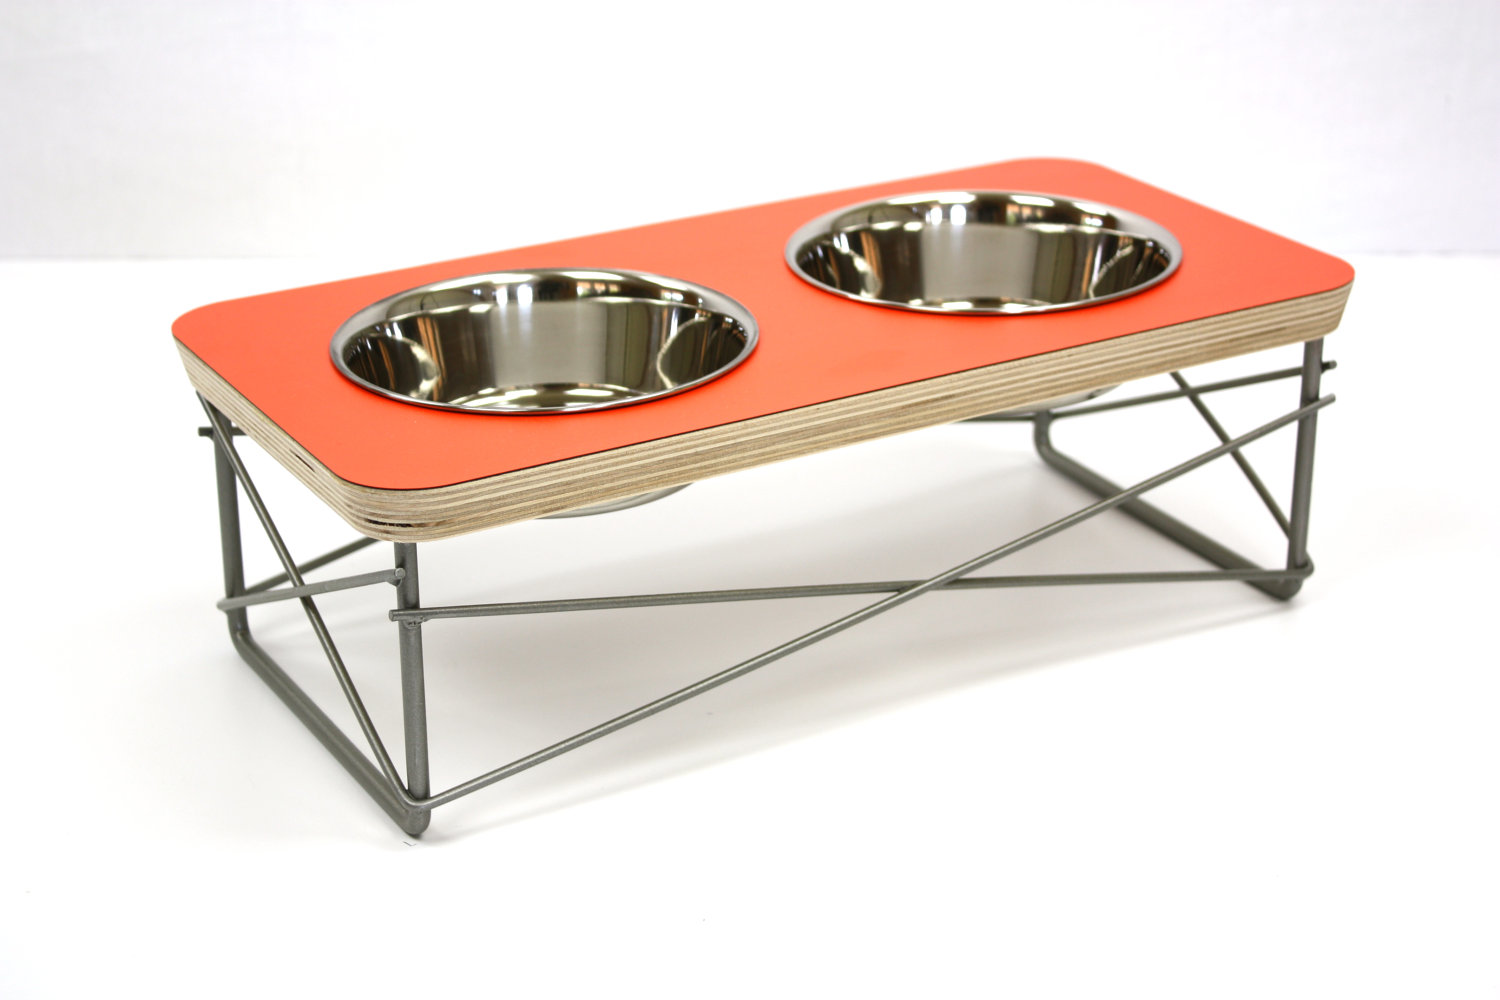 Water Feeder For Dogs | Elevated Dog Bowls | Water Bowl For Dog Crate